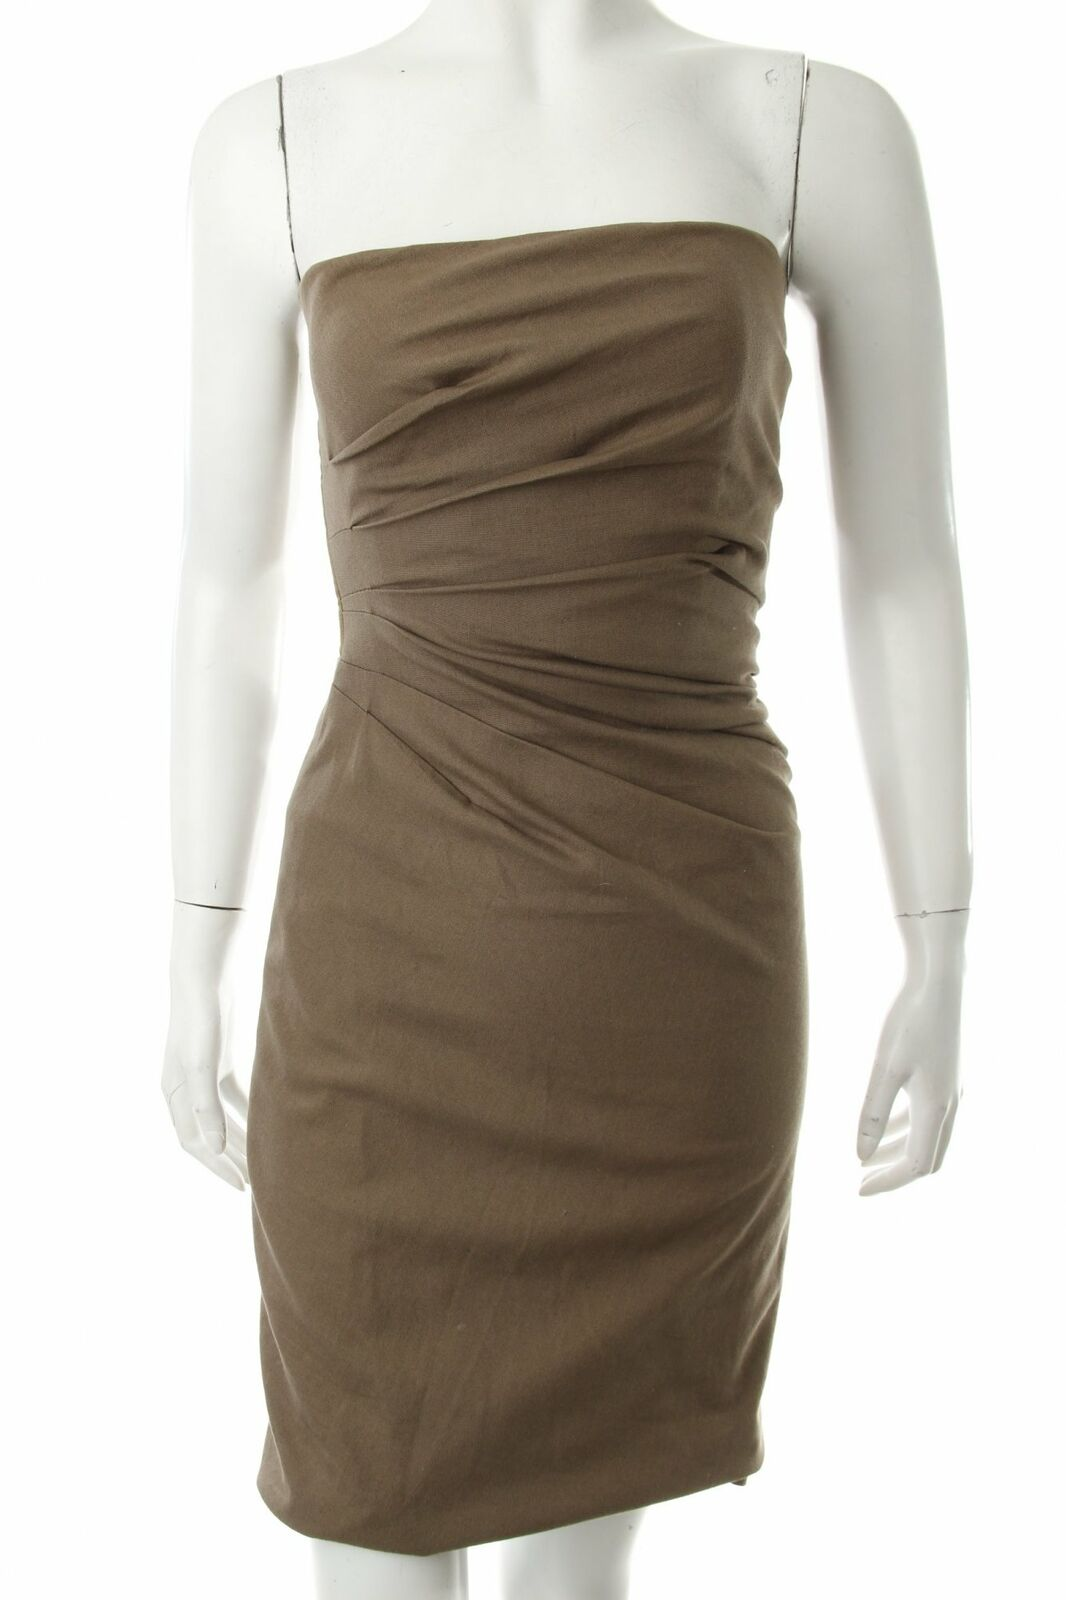 gucci bandeaukleid khaki damen gr. de 34 kleid dress bandeau